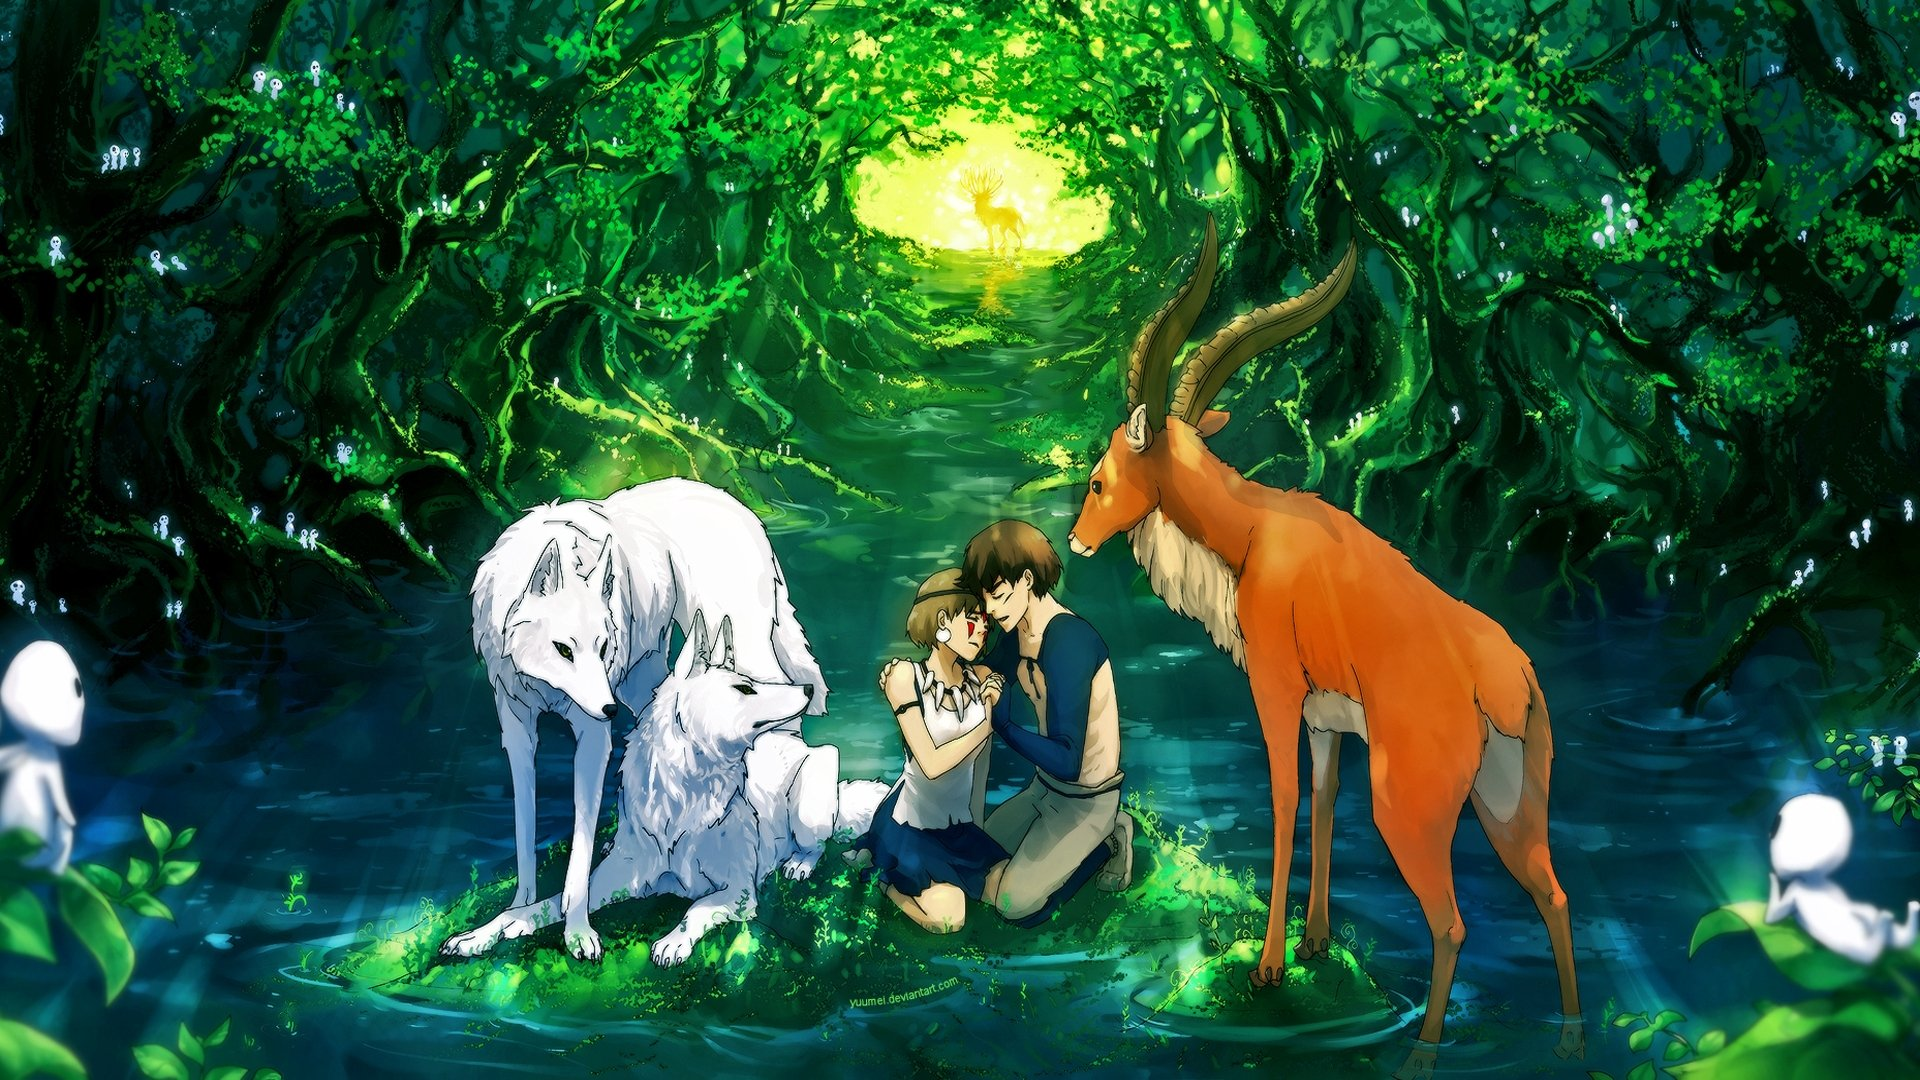 Girl Reading Book Wallpapers Anime Girl Character Beautiful Animal Forest Deer Couple